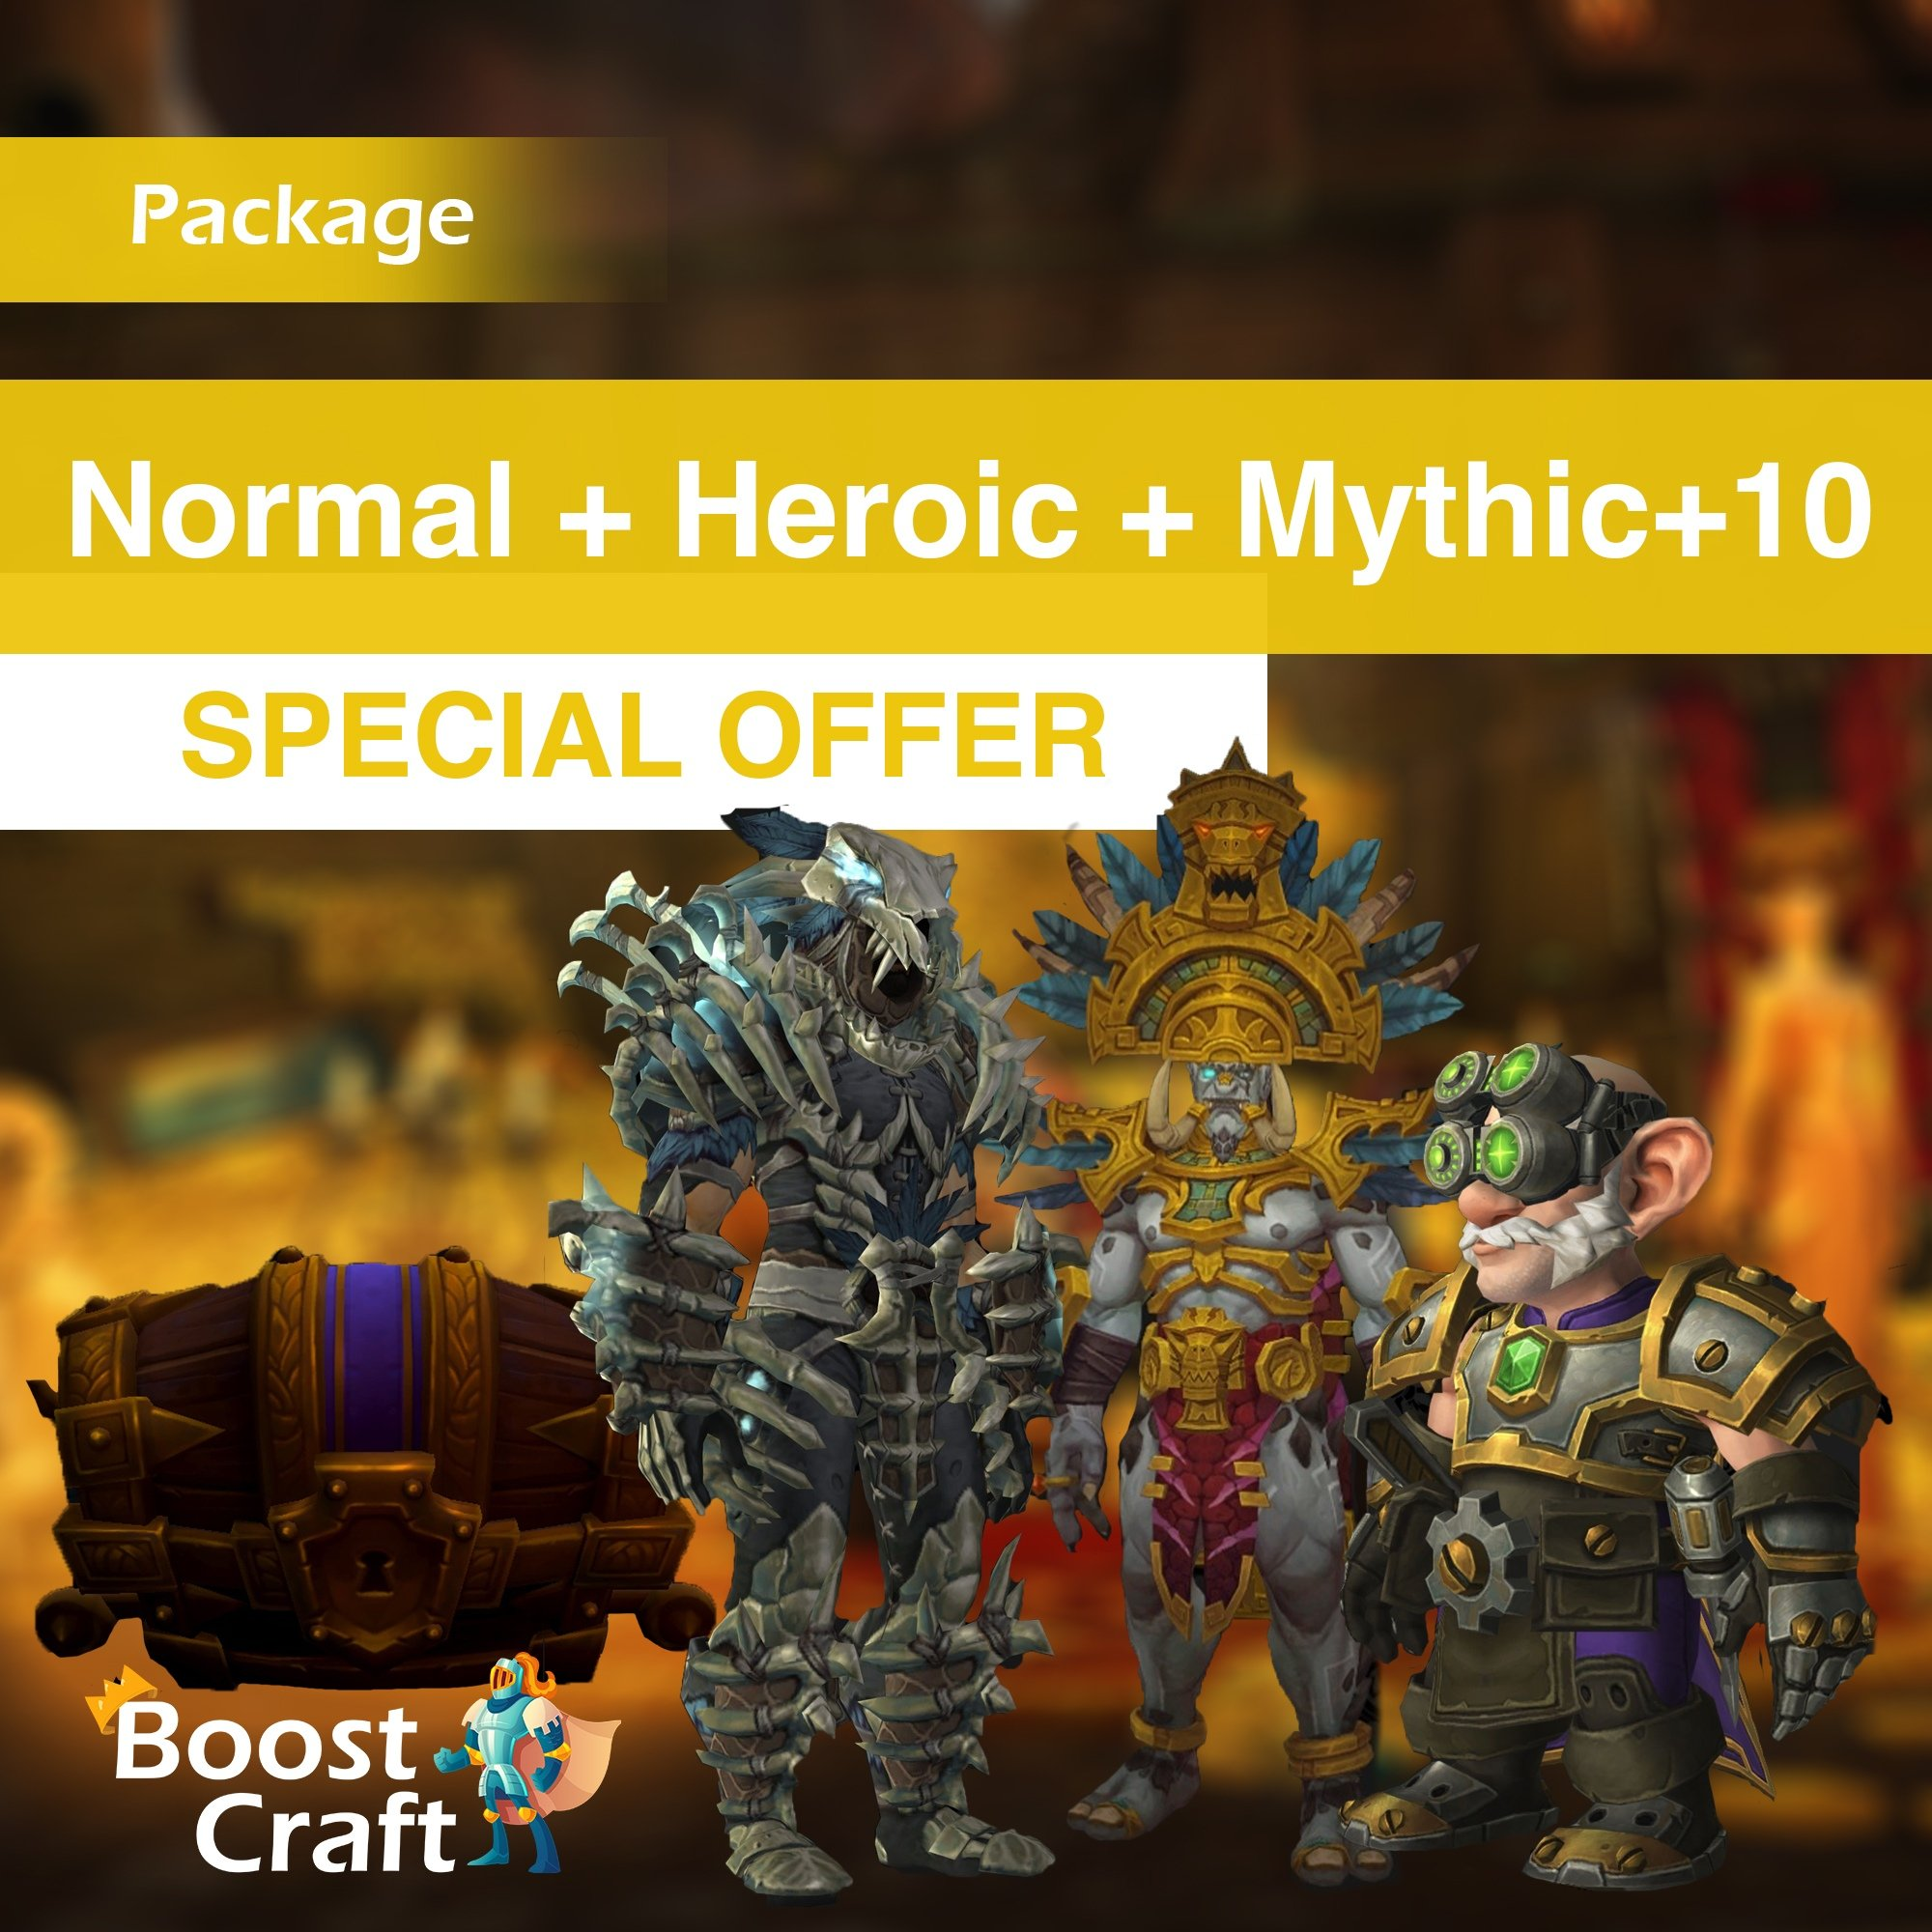 Weekly BoD package (Normal+Heroic run and mythic+10) – Boost